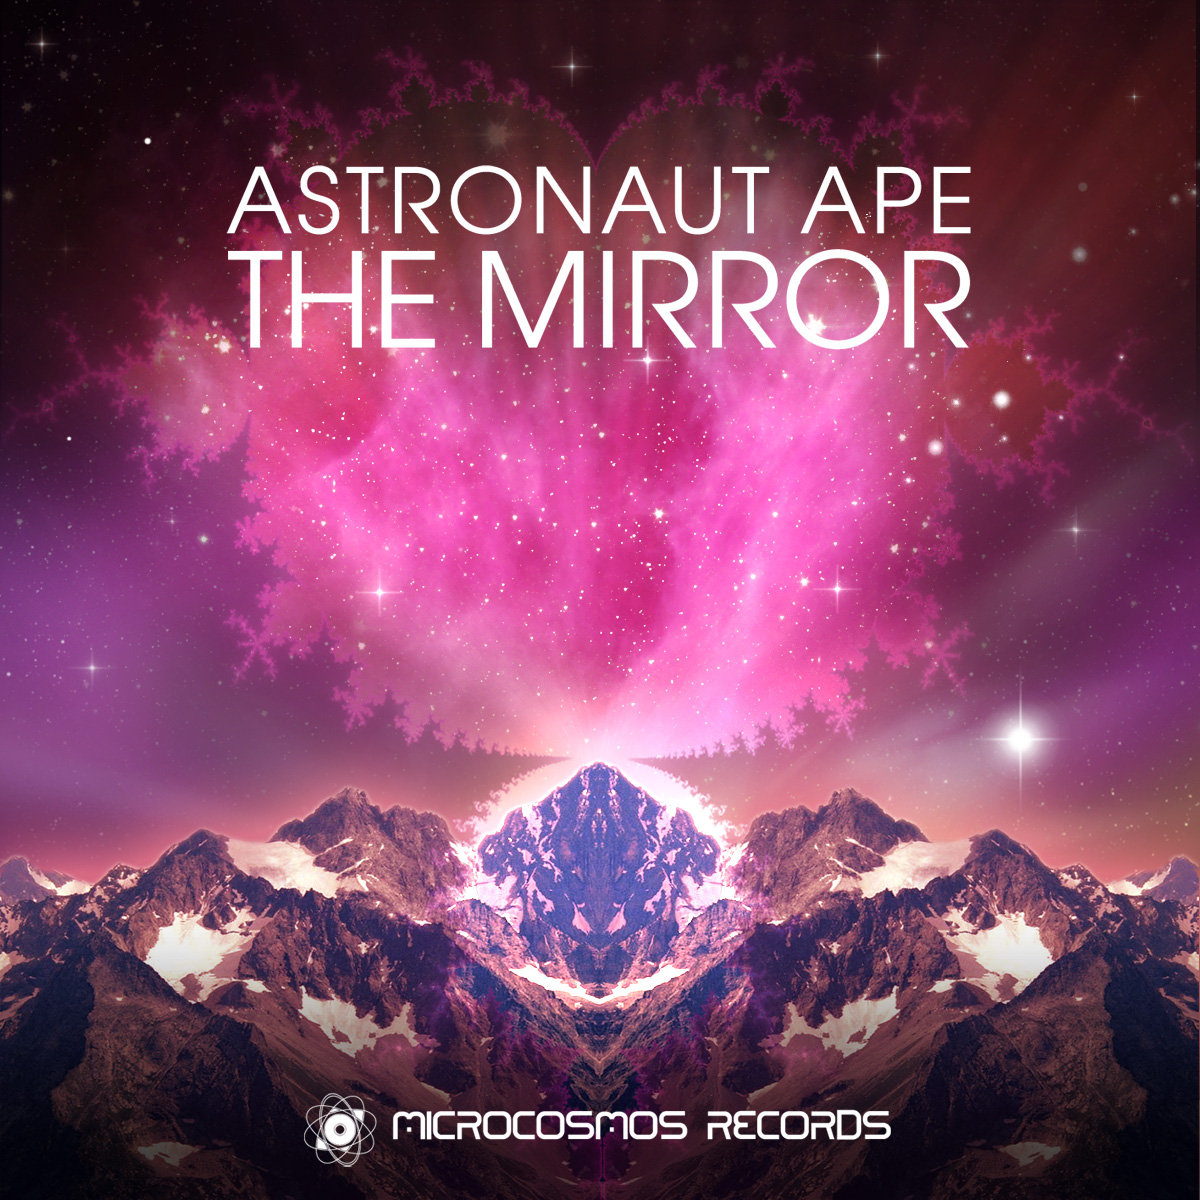 Astronaut Ape - ortnI @ 'The Mirror' album (ambient, chill-out)